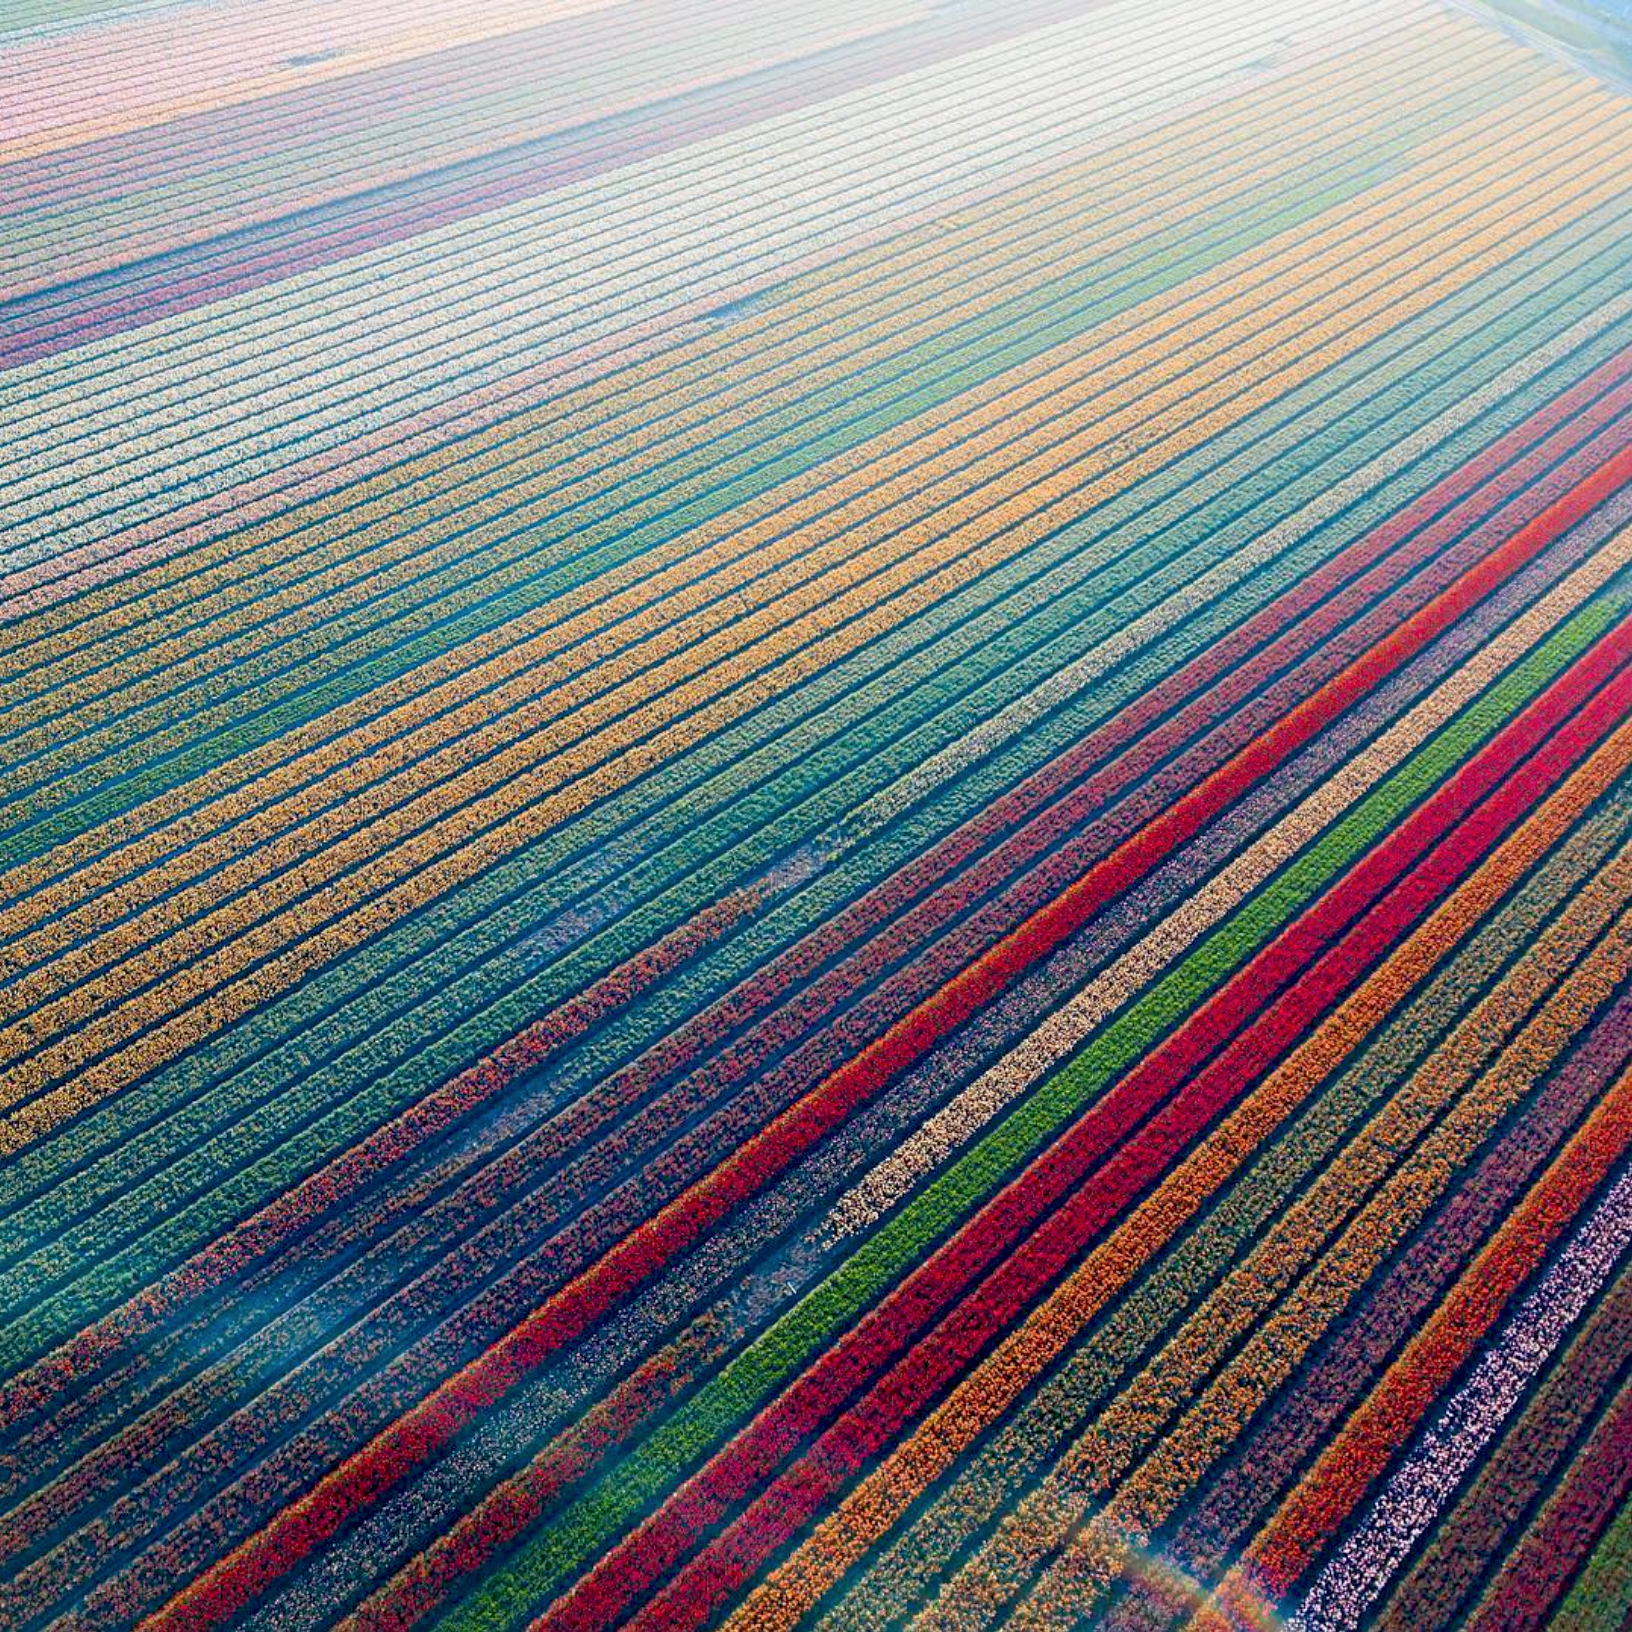 """We're excited to launch a new series called """"Drone Sundays"""" that will feature some of the best shots from our friends over at From Where I Drone. Today's post shows tulip fields in Lisse, Netherlands, which begin to bloom in March and are in peak bloom by late April. The Dutch produce a total of 4.32 billion tulip bulbs each year.  52°16'34.9""""N 4°33'25.5""""E  Source imagery: Dronewise"""